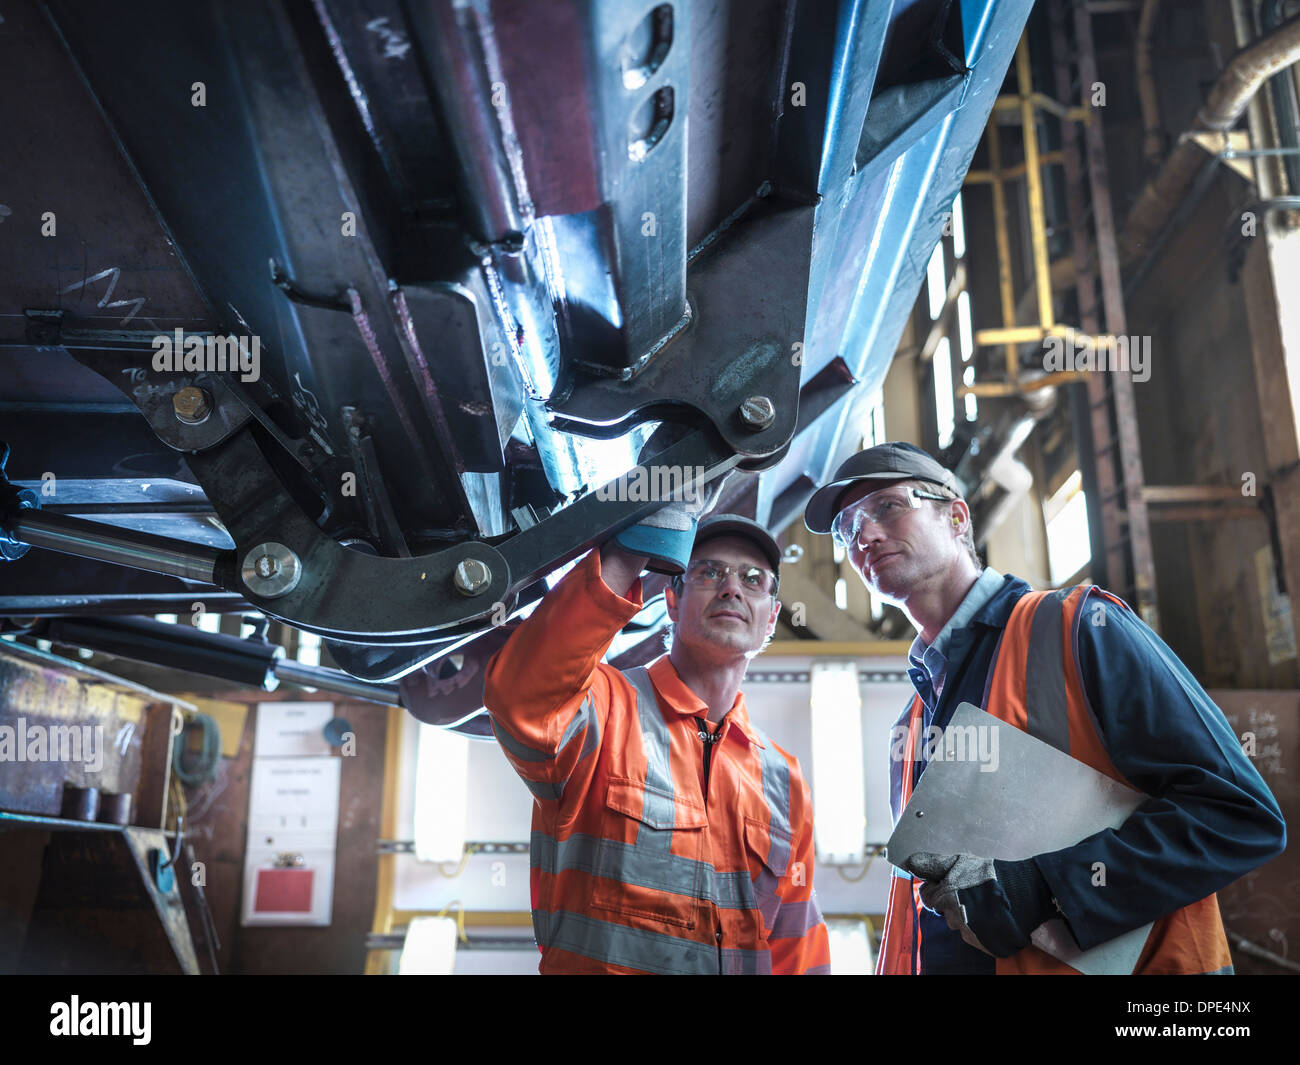 Engineers inspecting work in factory - Stock Image